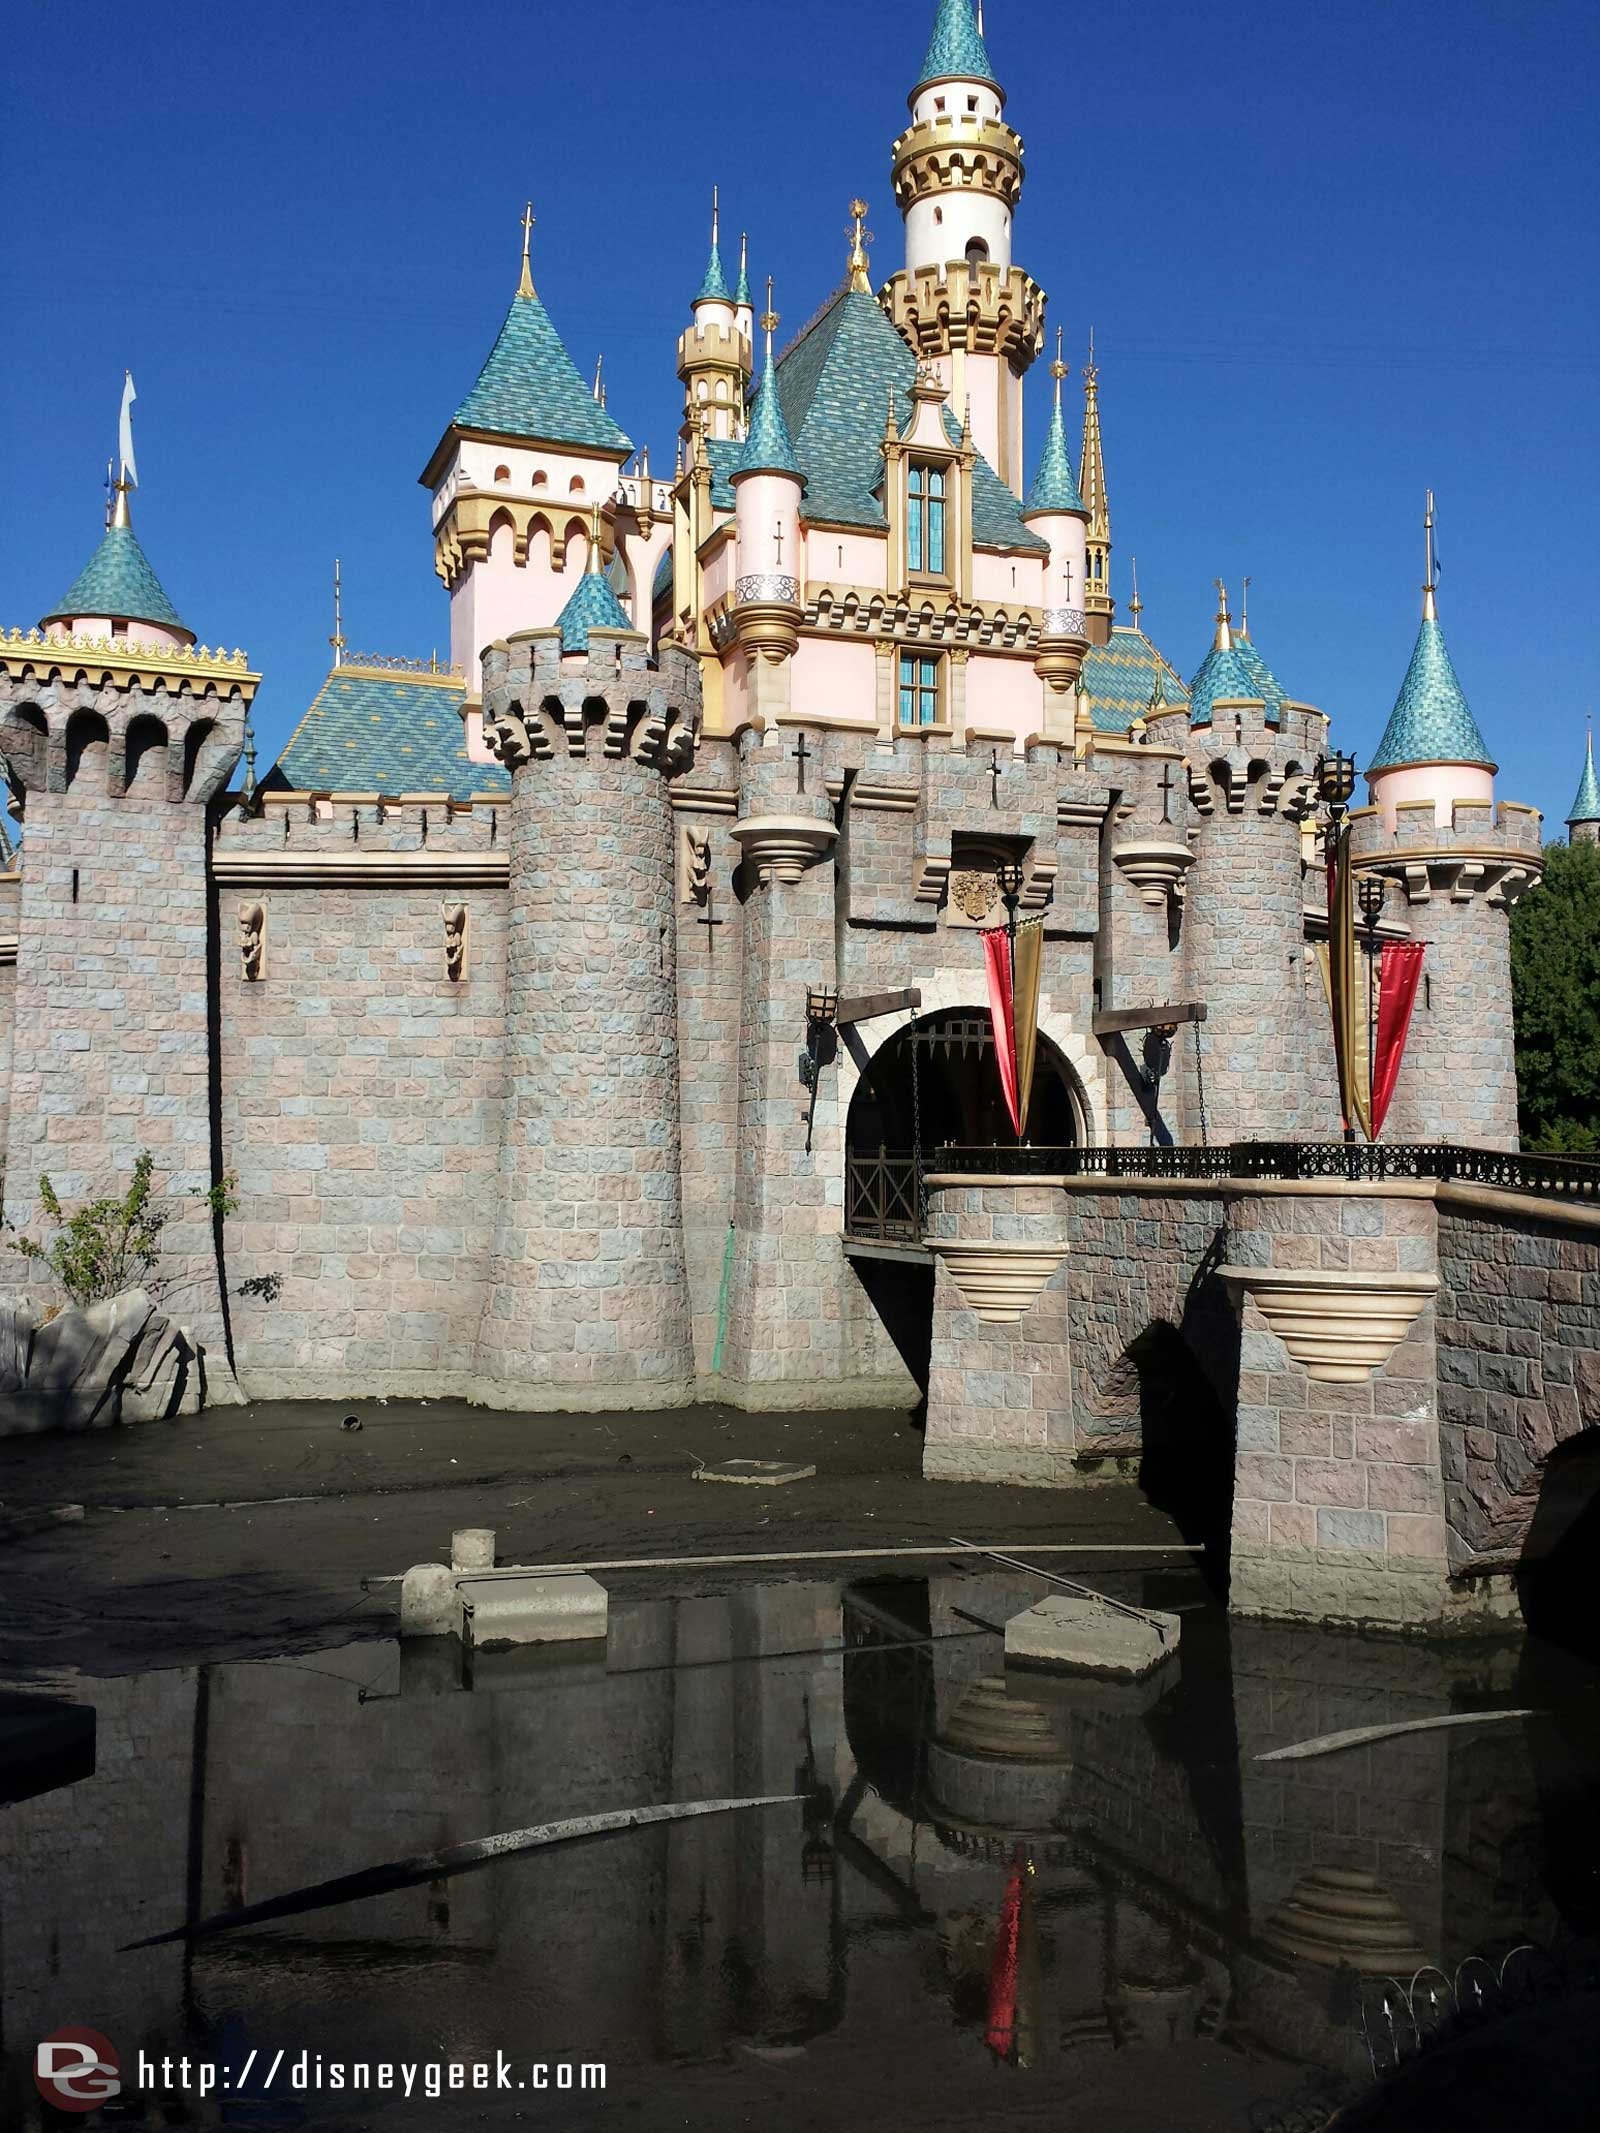 The moat in front of Sleeping Beauty Castle has been drained #Disneyland